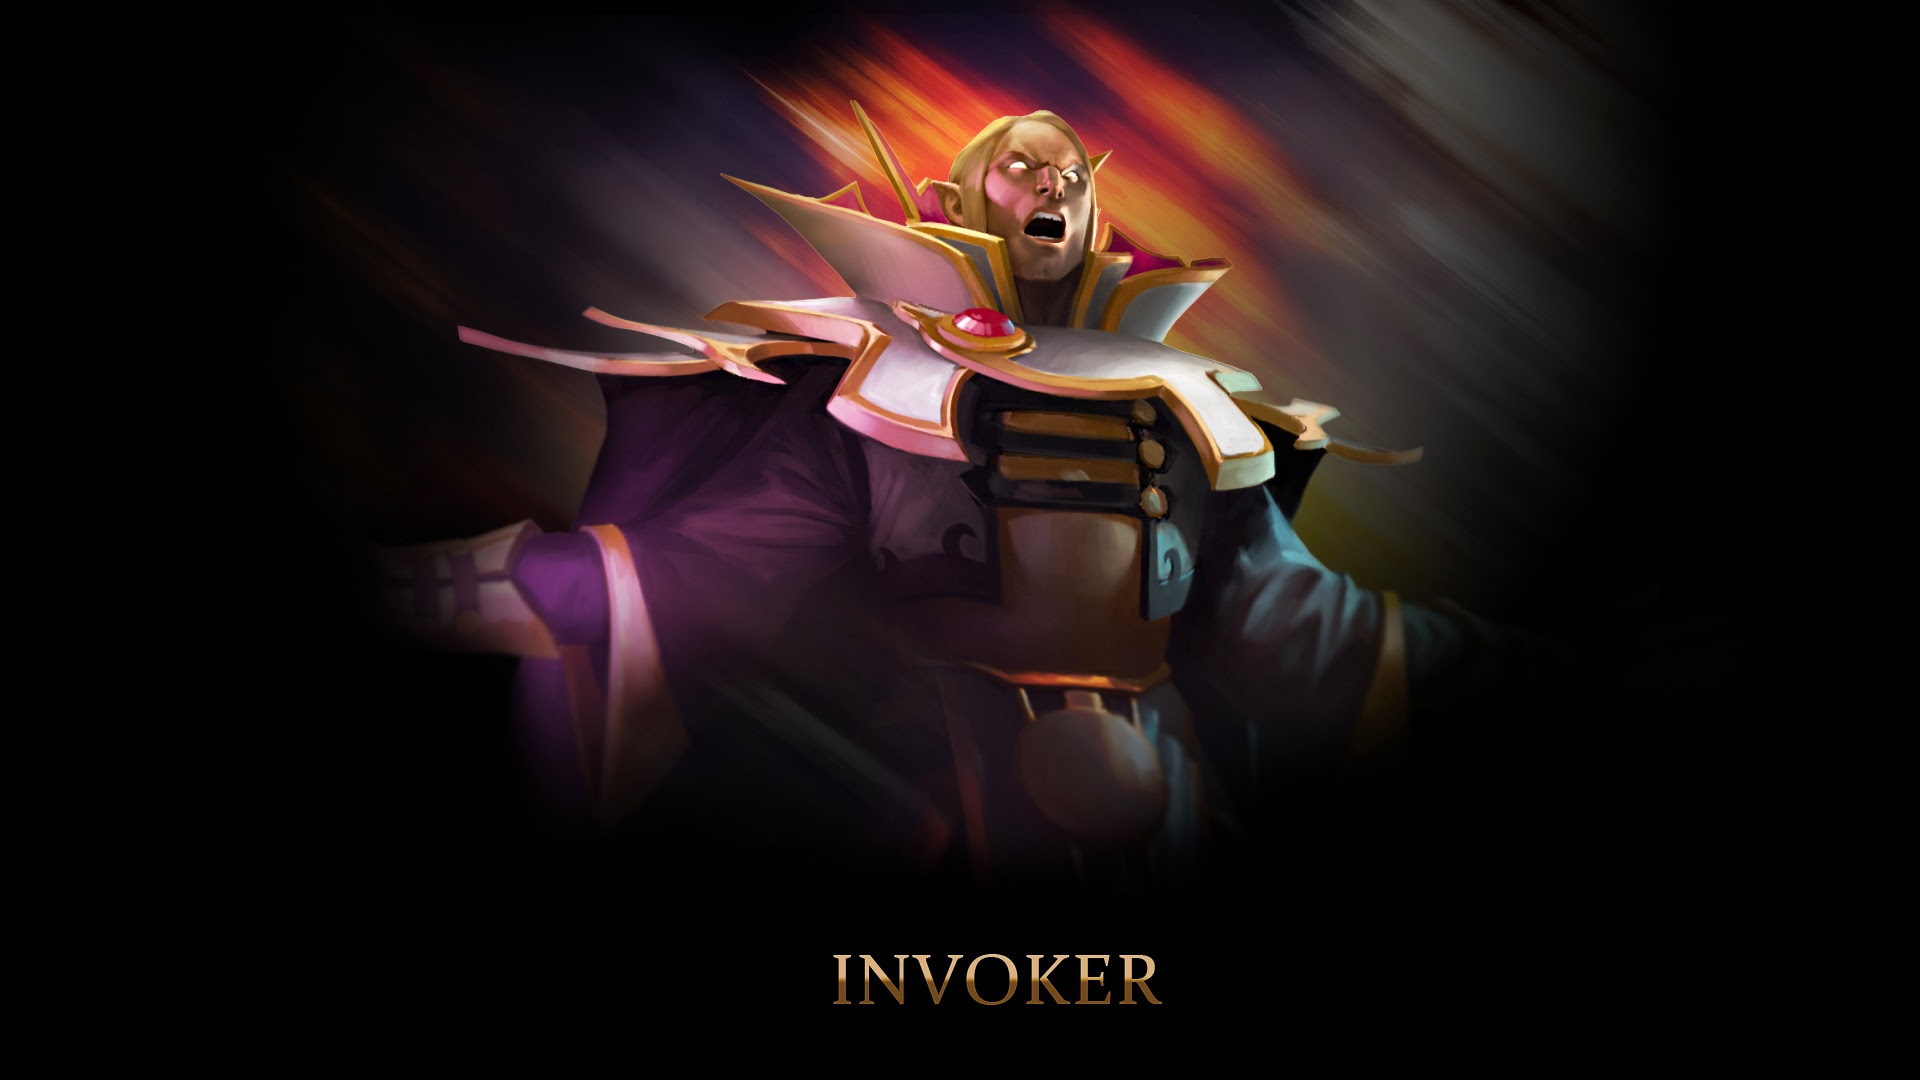 Invoker Dota 2 v5 Wallpaper HD